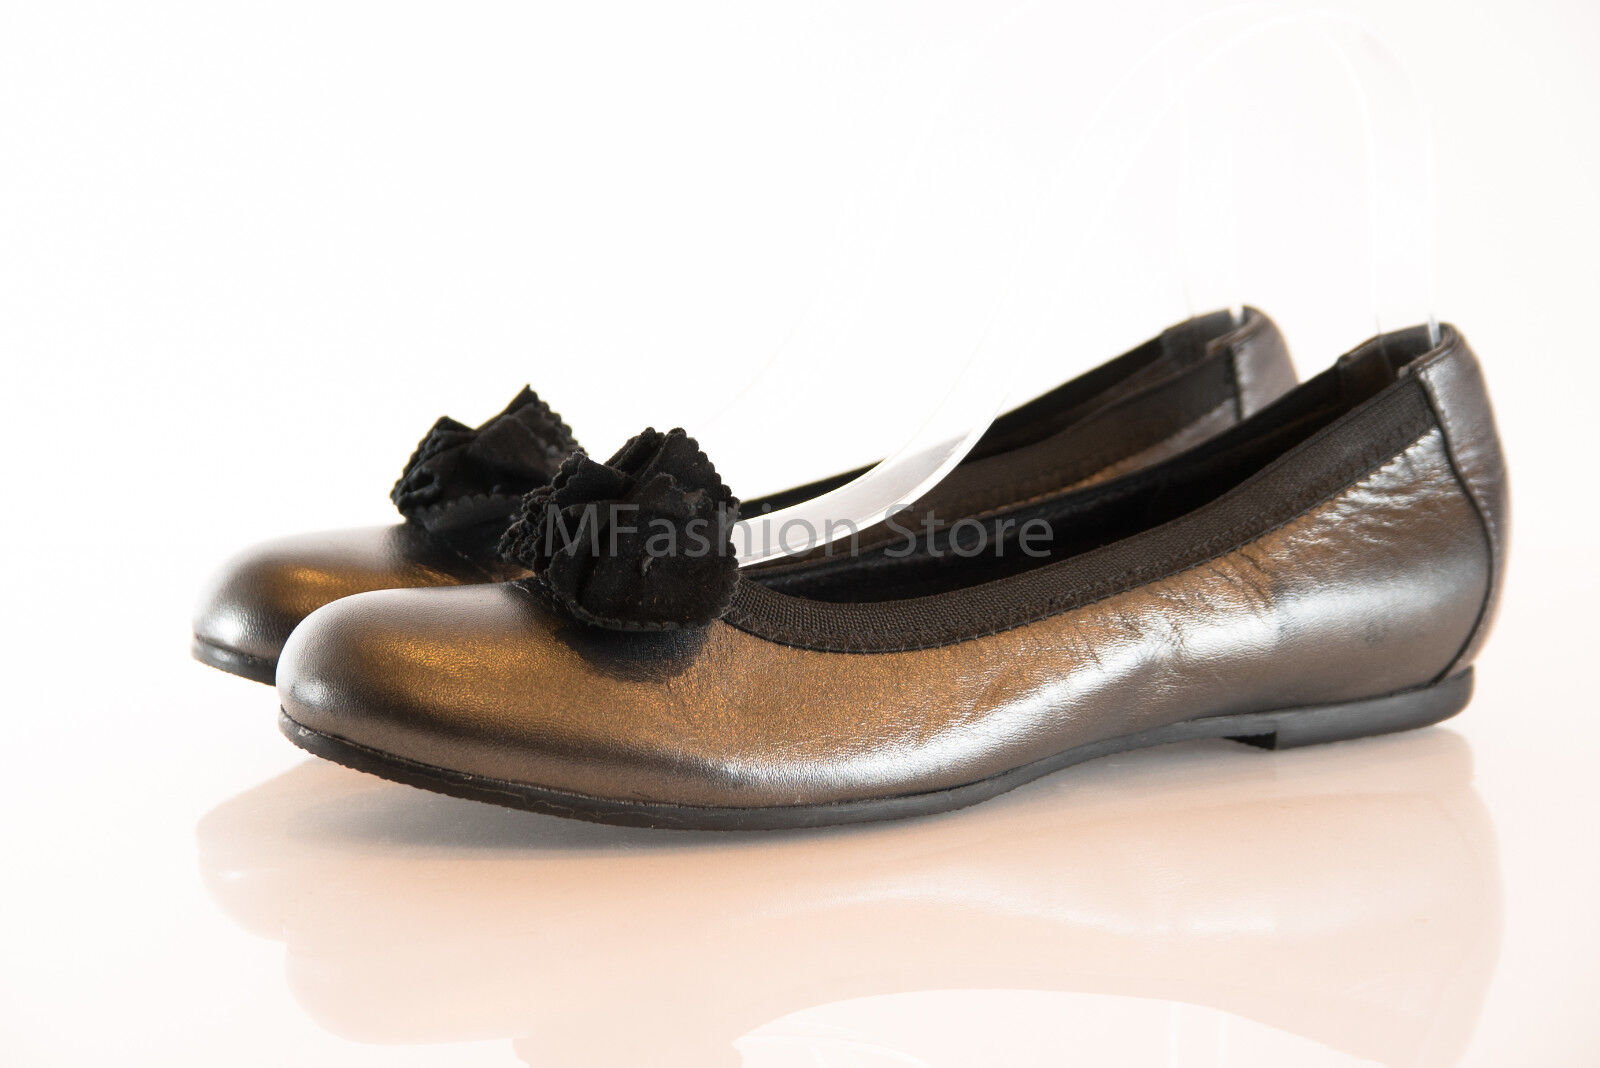 MUNRO182378 Silver Gray On Leather Loafers / Slip On Gray Womens Shoes Size US 7M New bc6e12